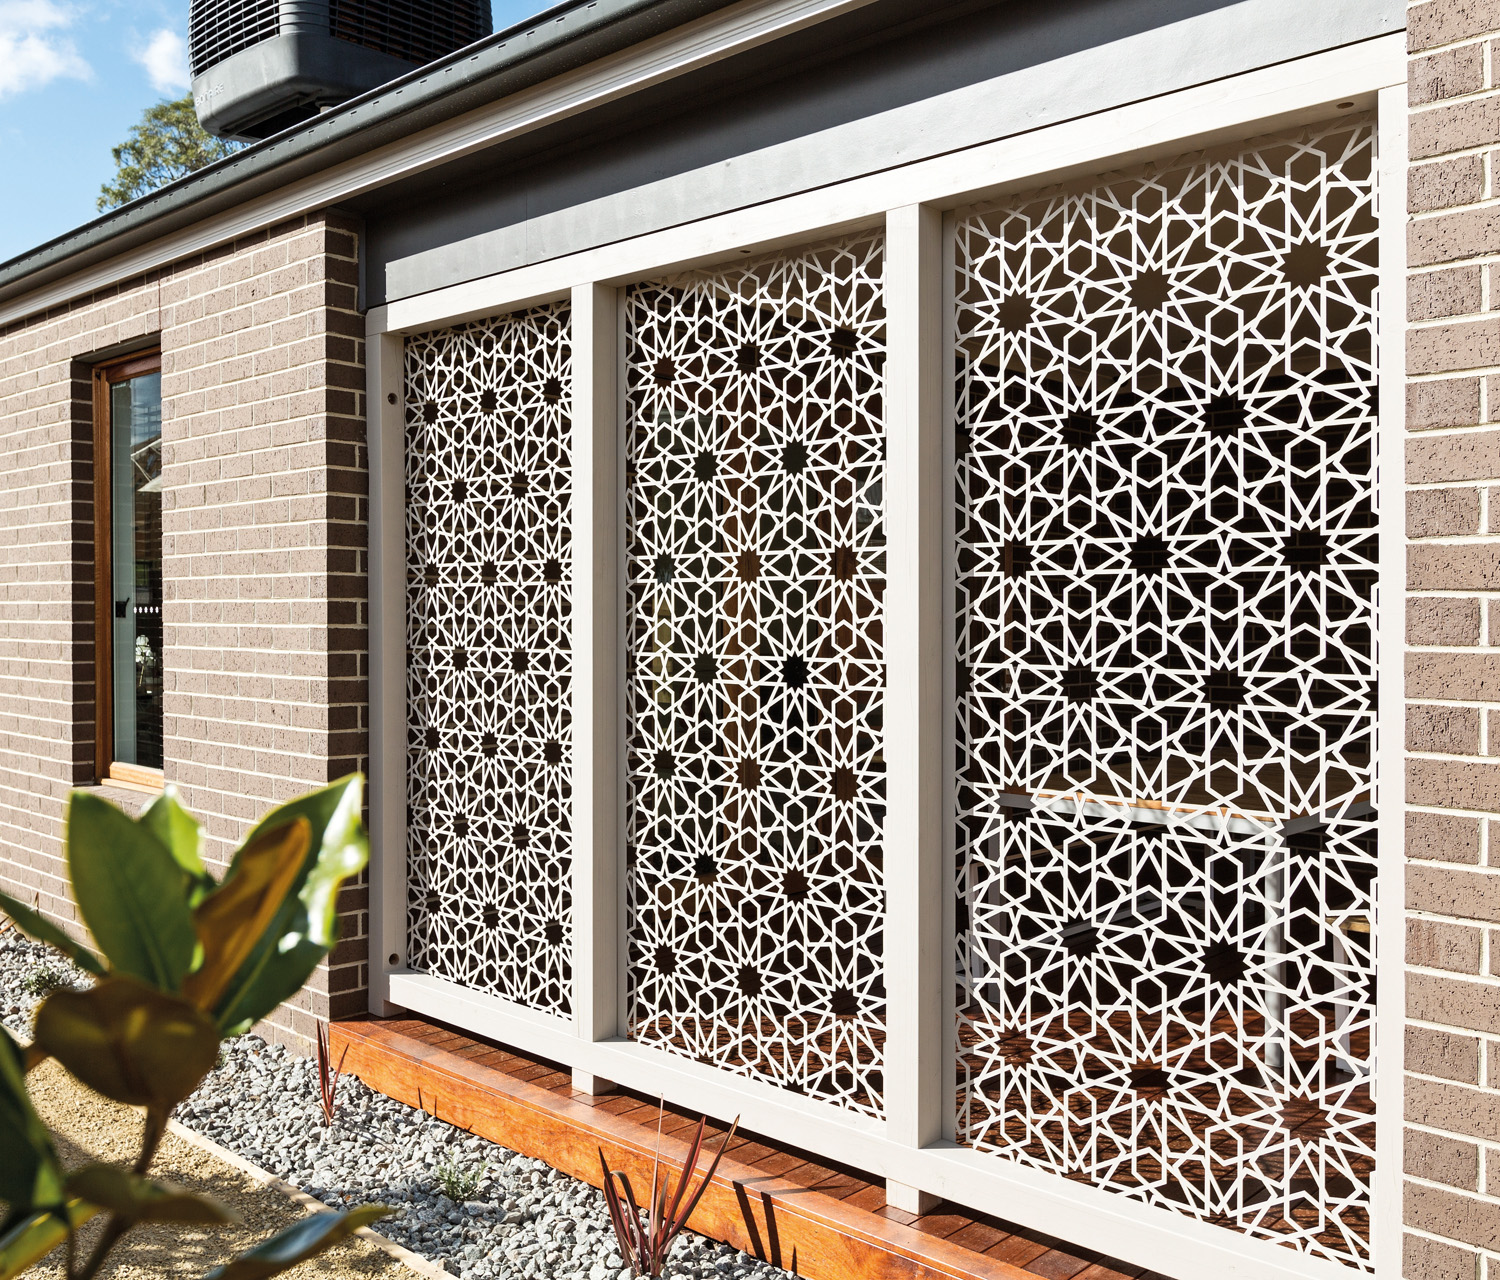 doors home and new ideas com aluminum modern decorative metal design decoration doo backyards affordable u dwfjp decorating grille inspiration decor unique screen door